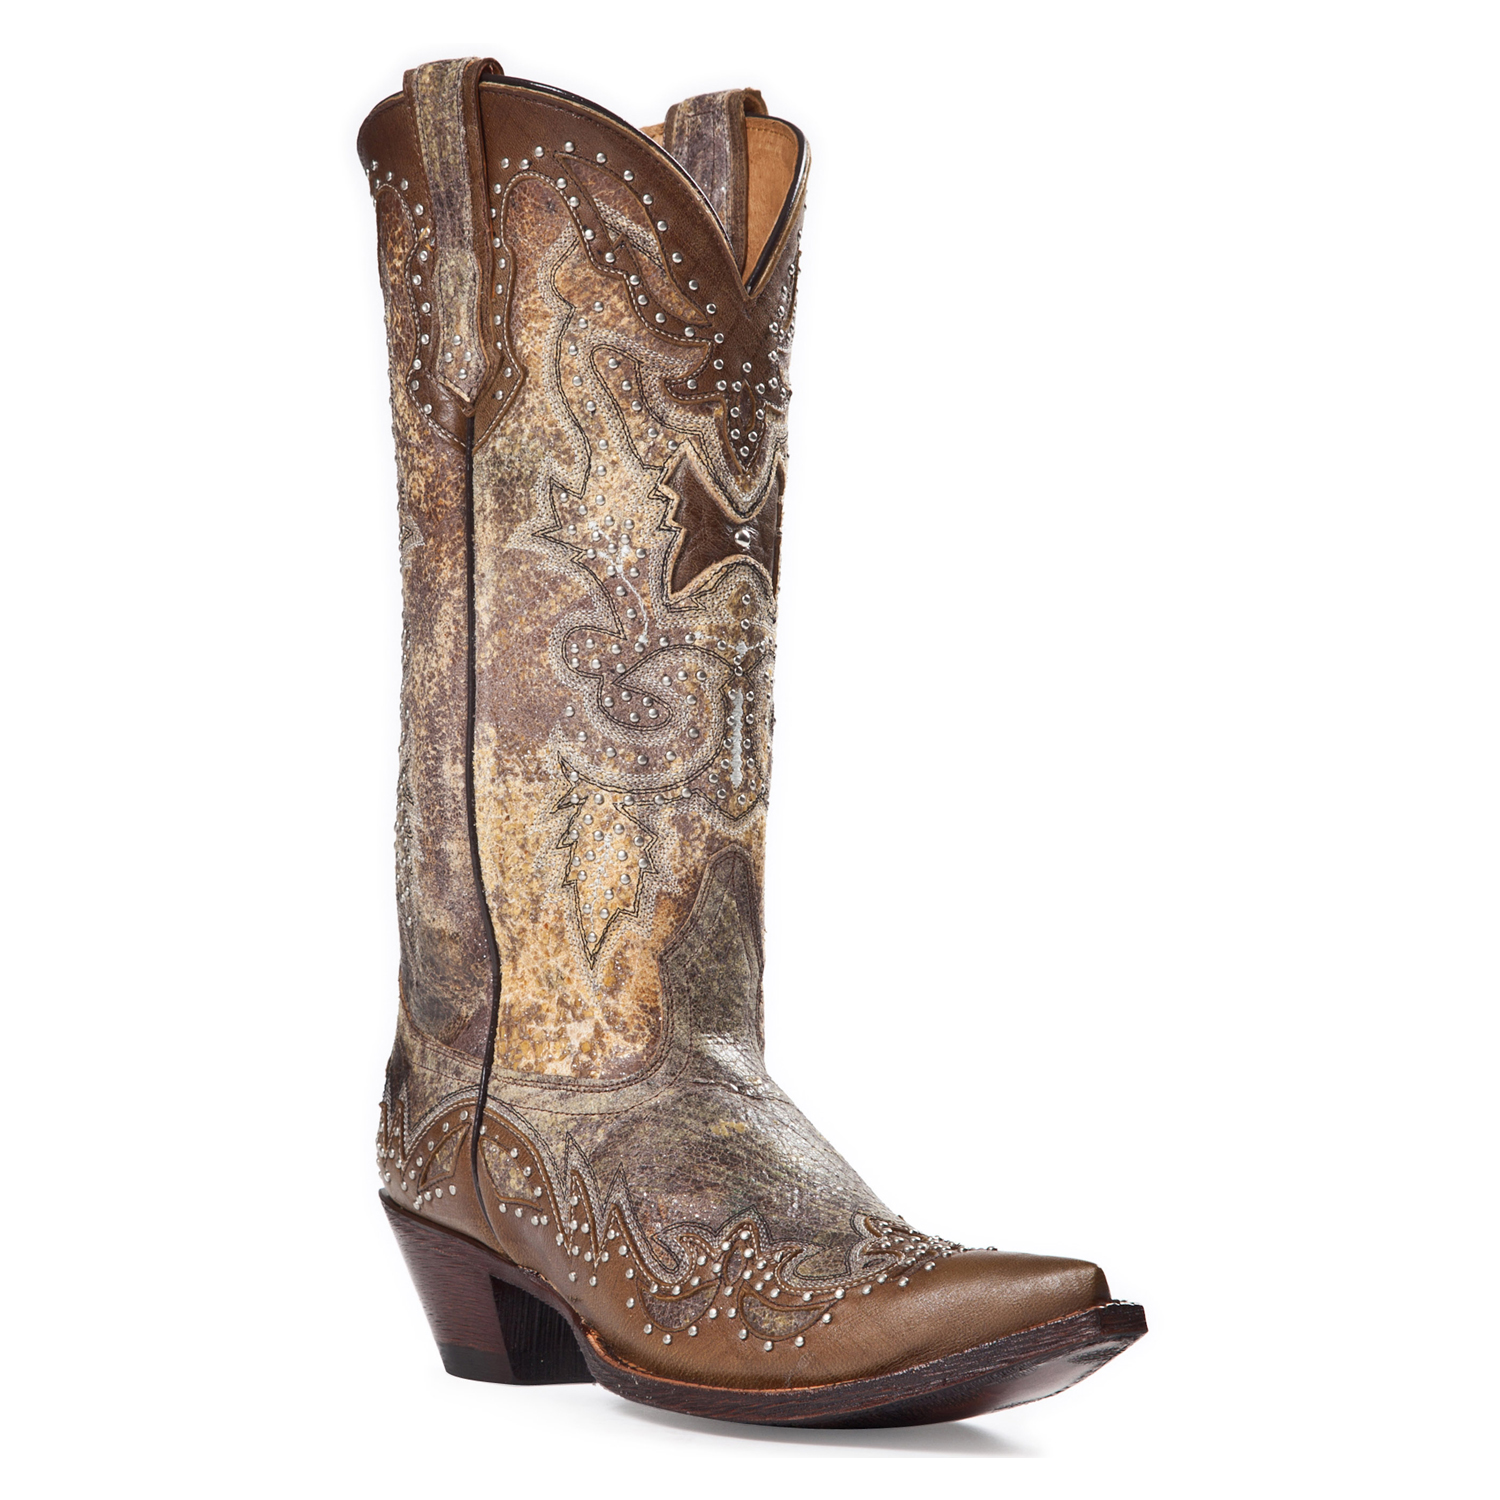 Johnny-Ringo-Boots Sagrada and Legacy Collection